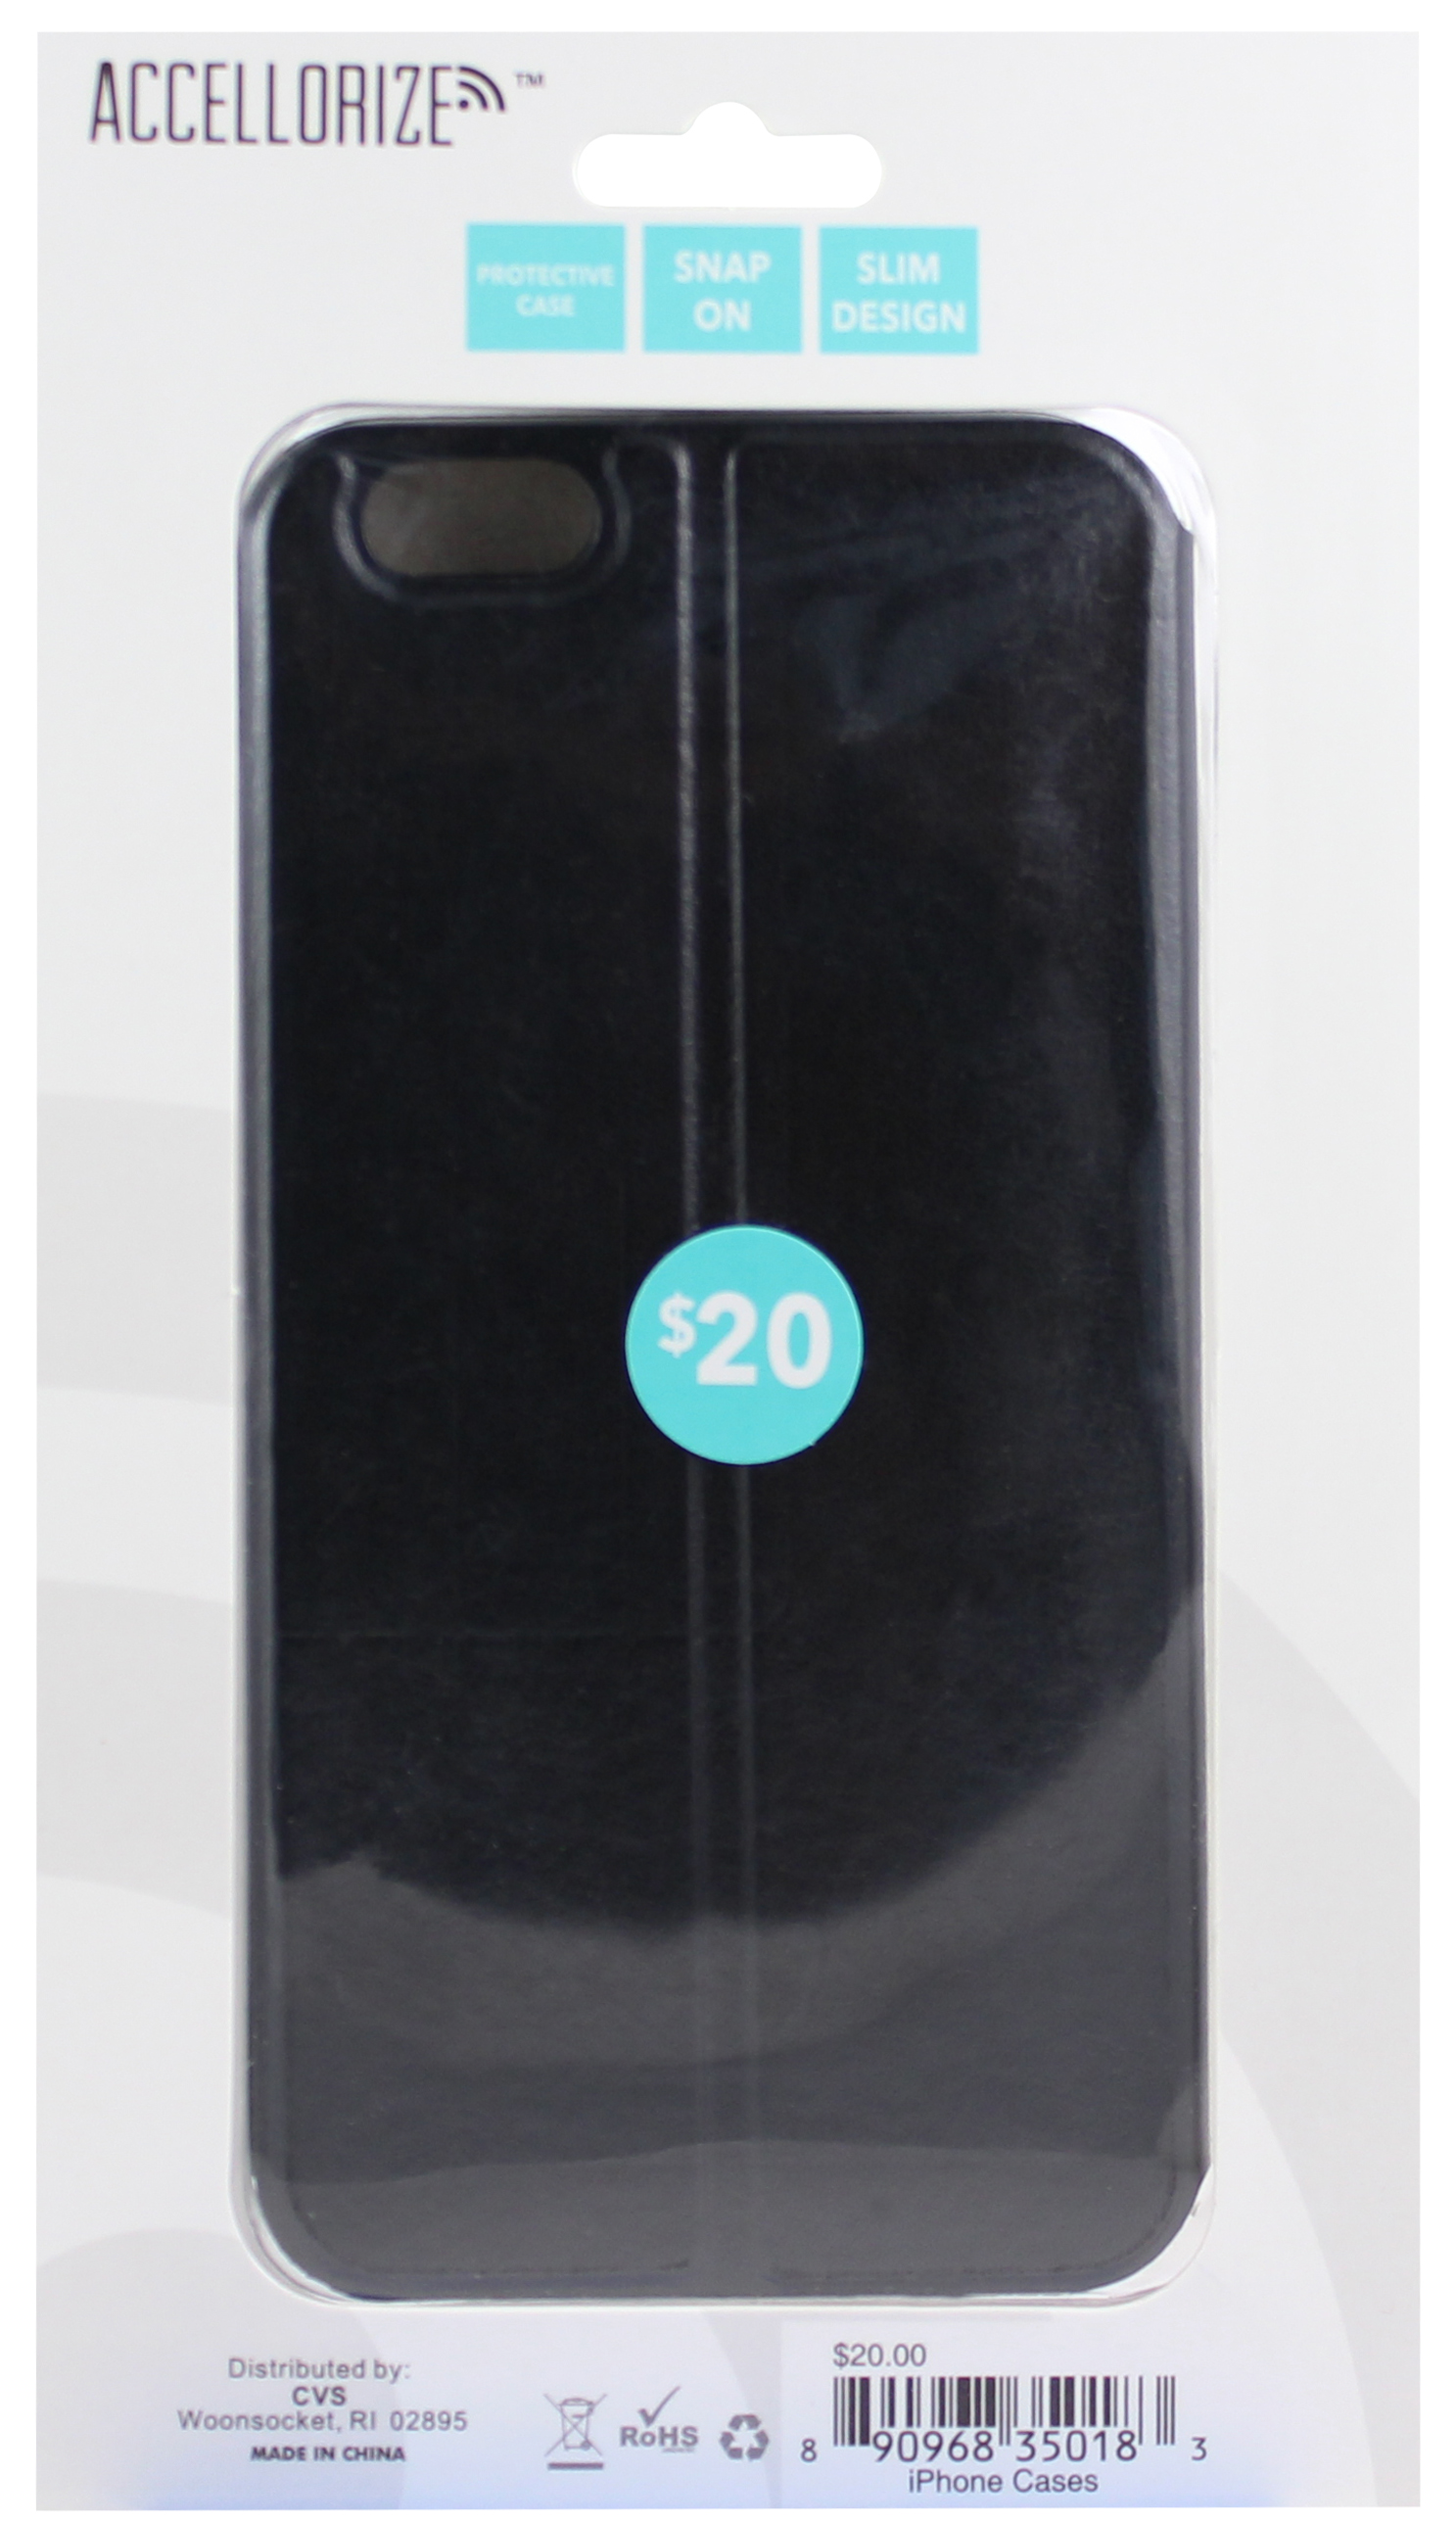 ACCELLORIZE 35018 BLACK PROTECTIVE CASE FOR IPHONE 6 MADE OF